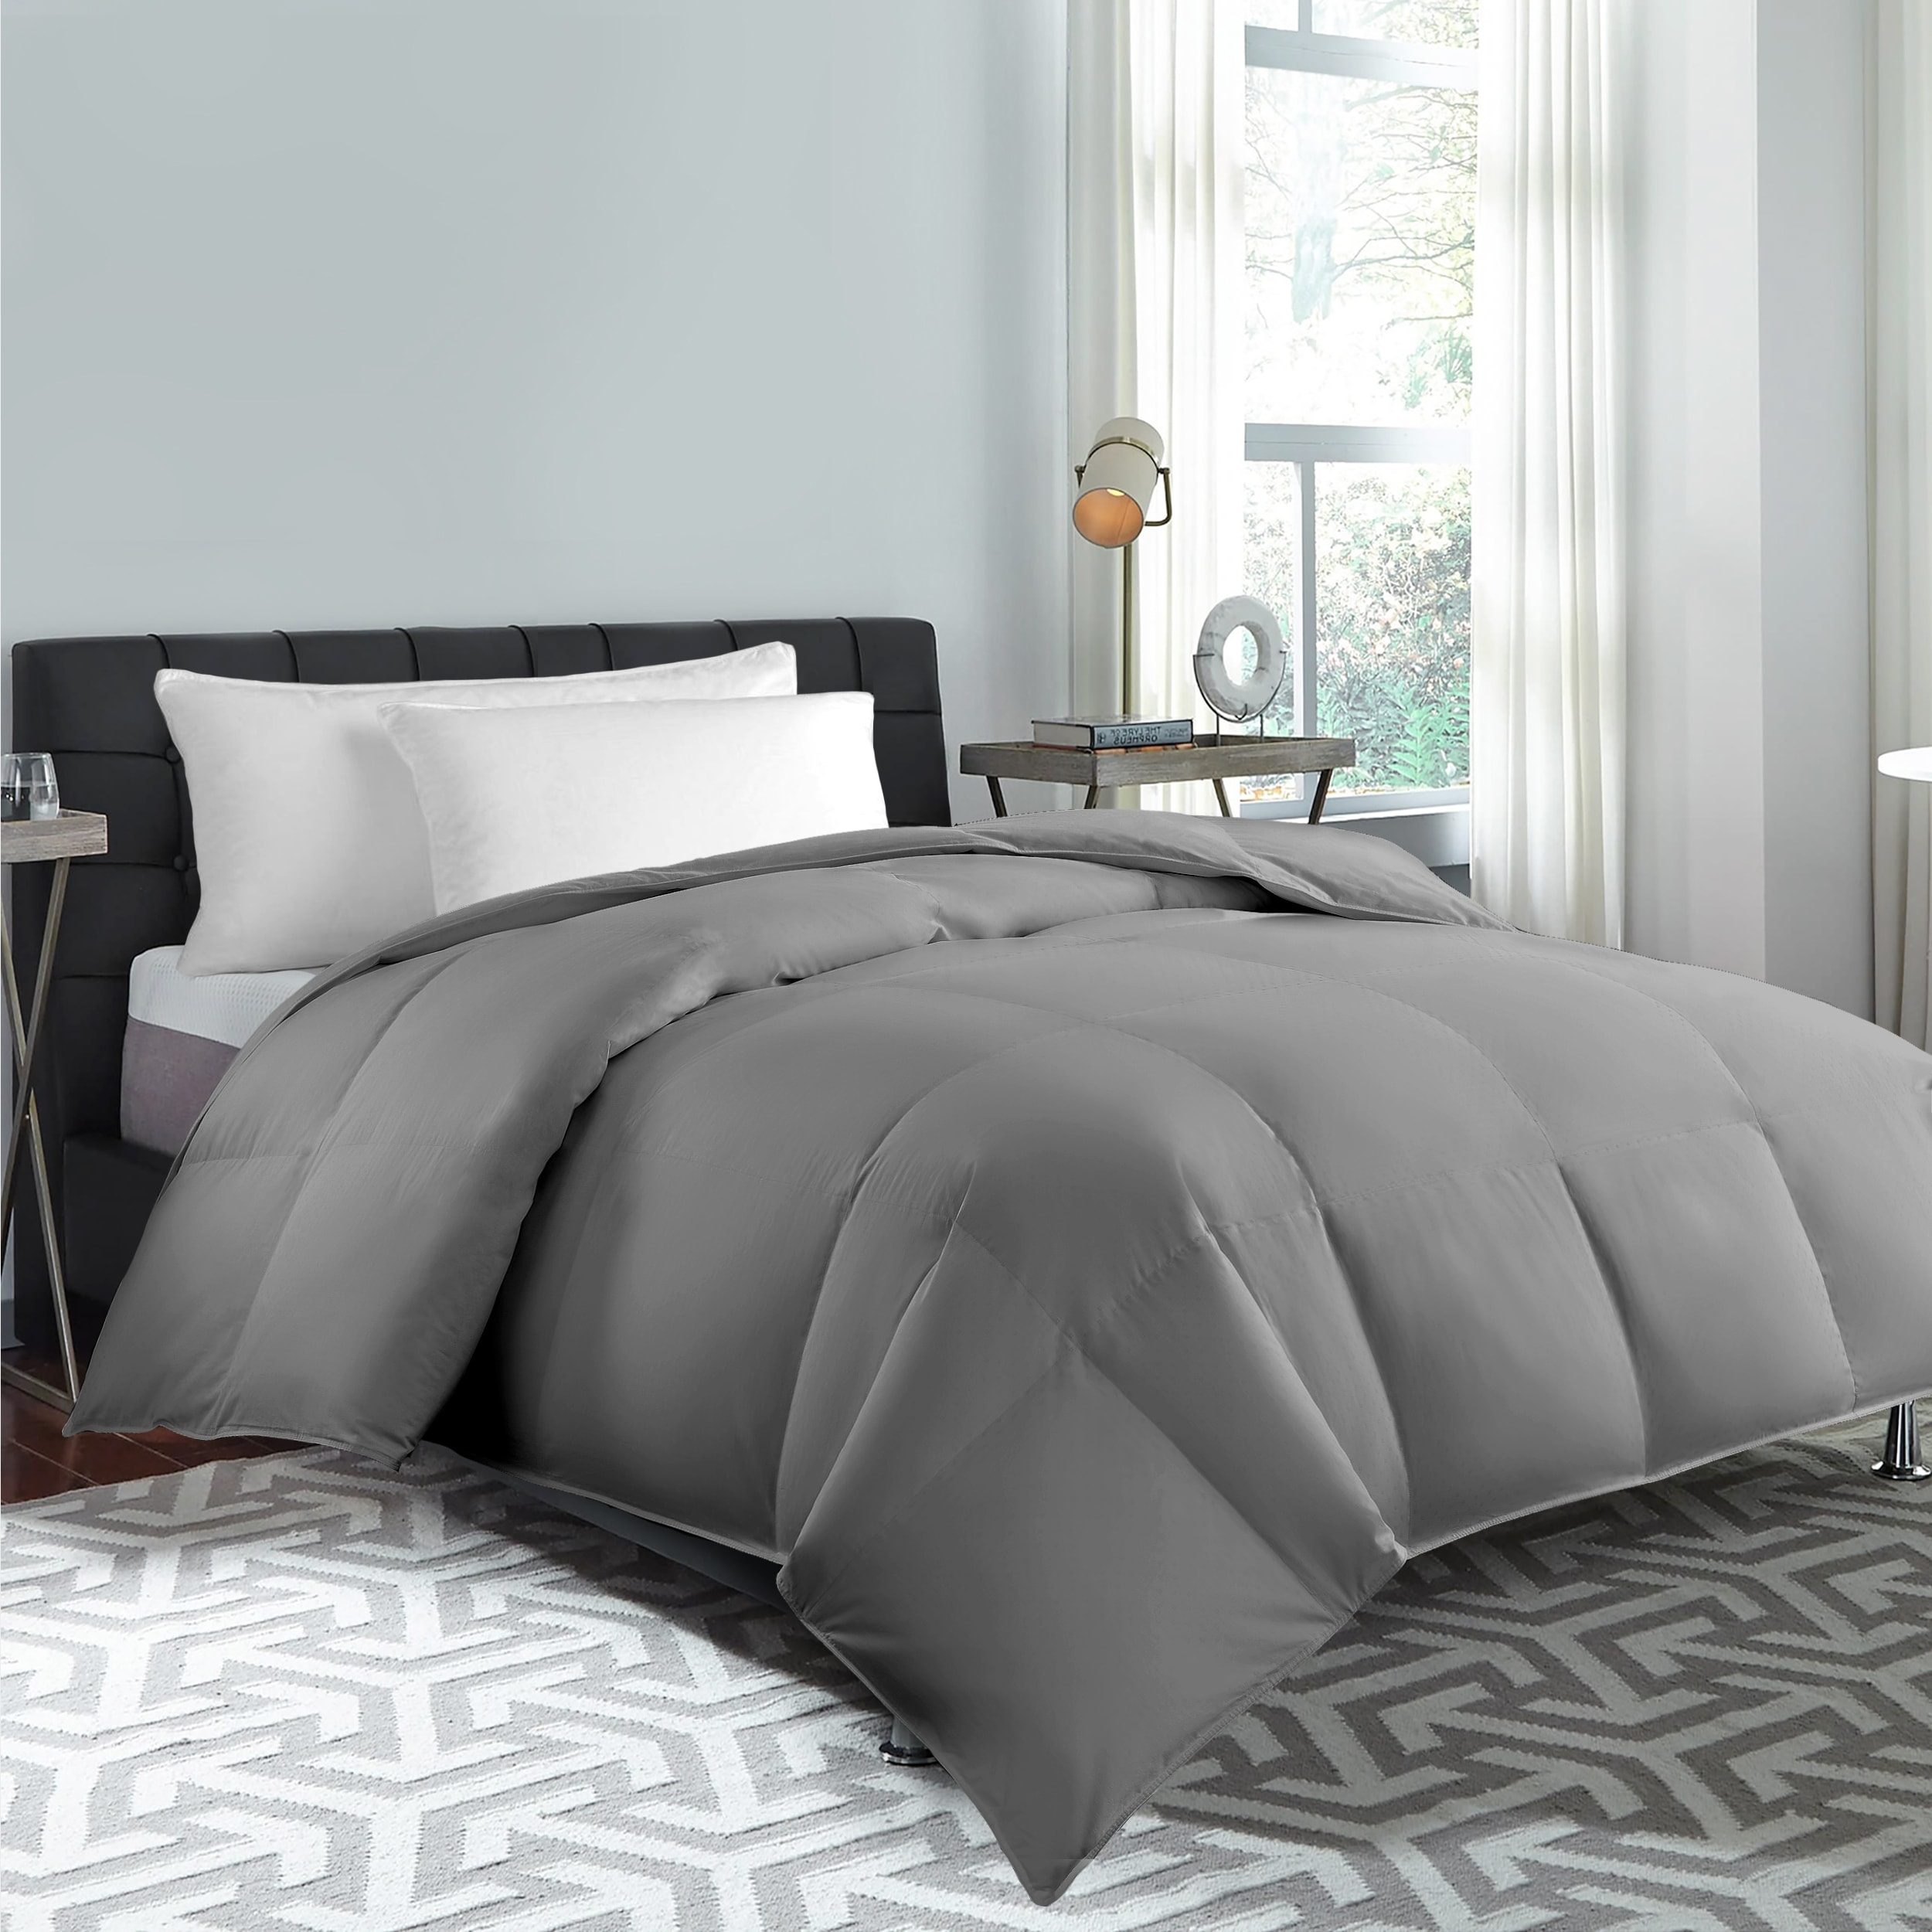 Hotel Grand Color Feather And Down Comforter Overstock 26887055